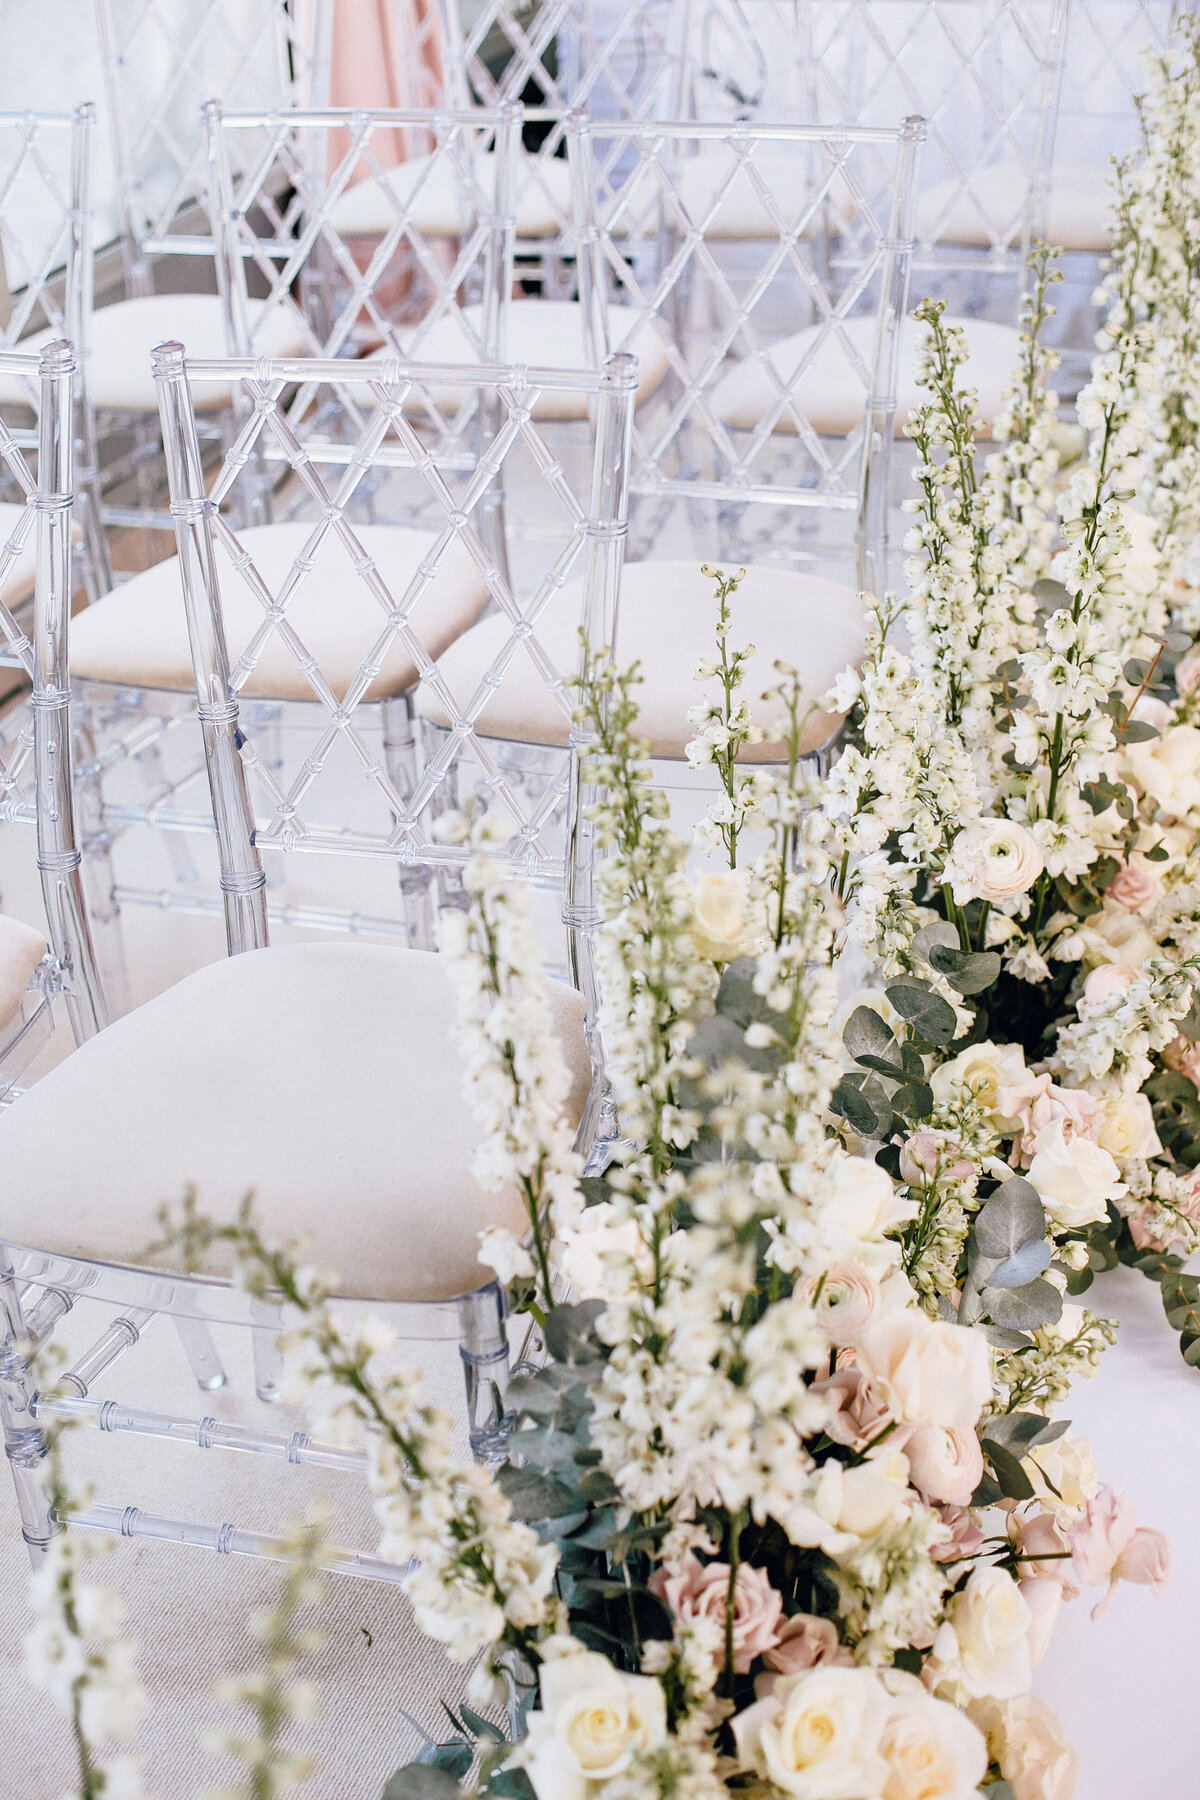 wanderingblooms events aisle design